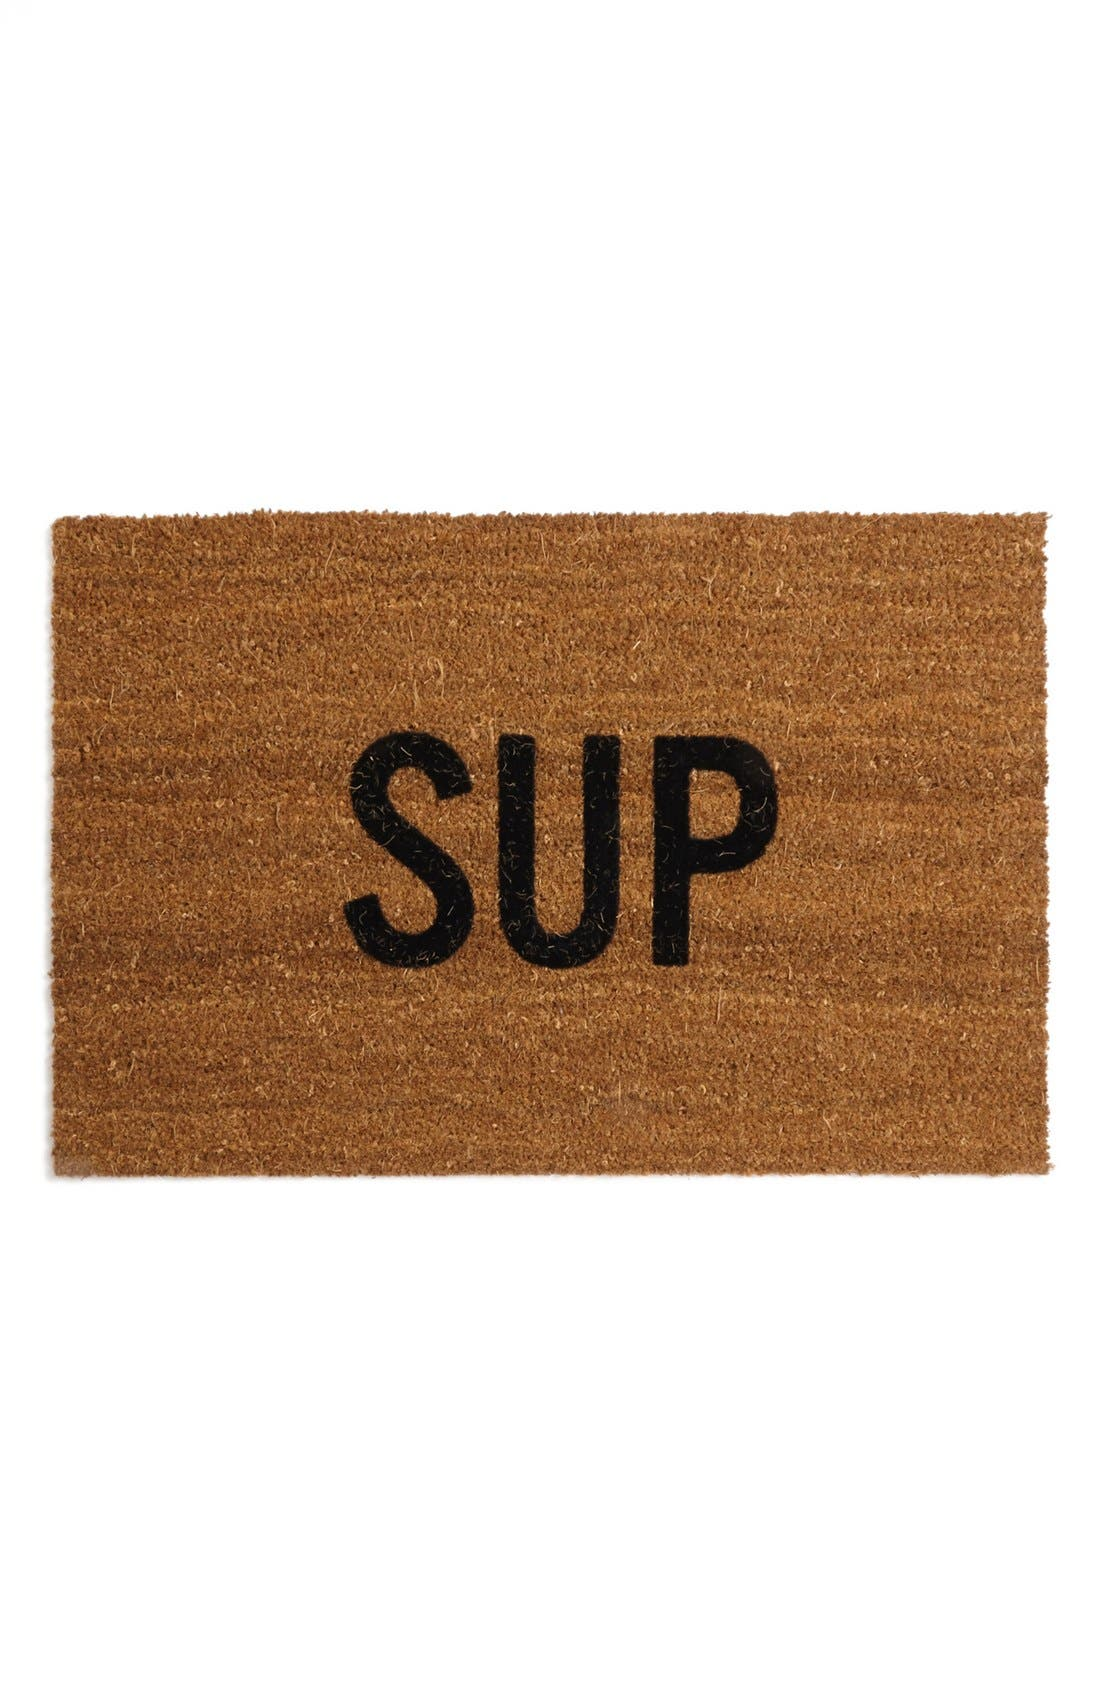 Main Image - Reed Wilson Design 'Sup' Doormat